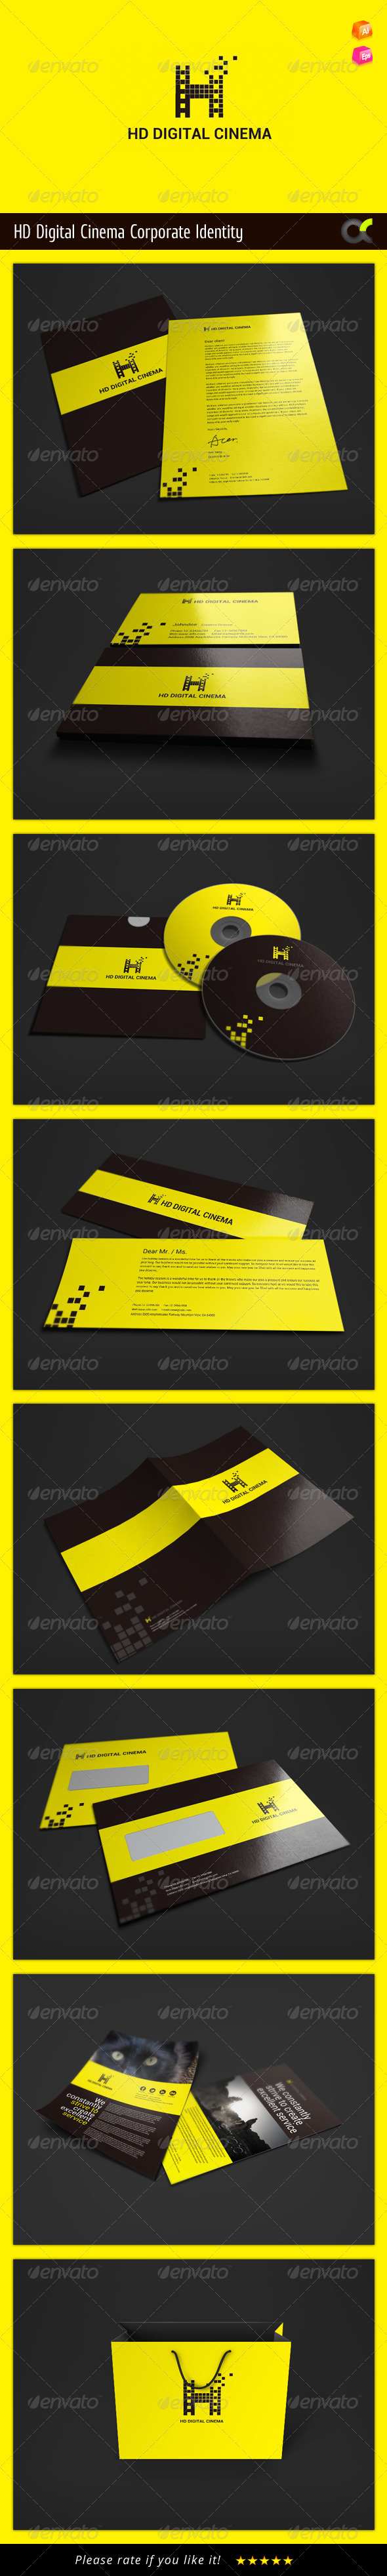 GraphicRiver HD Digital Cinema Corporate Identity 8586121